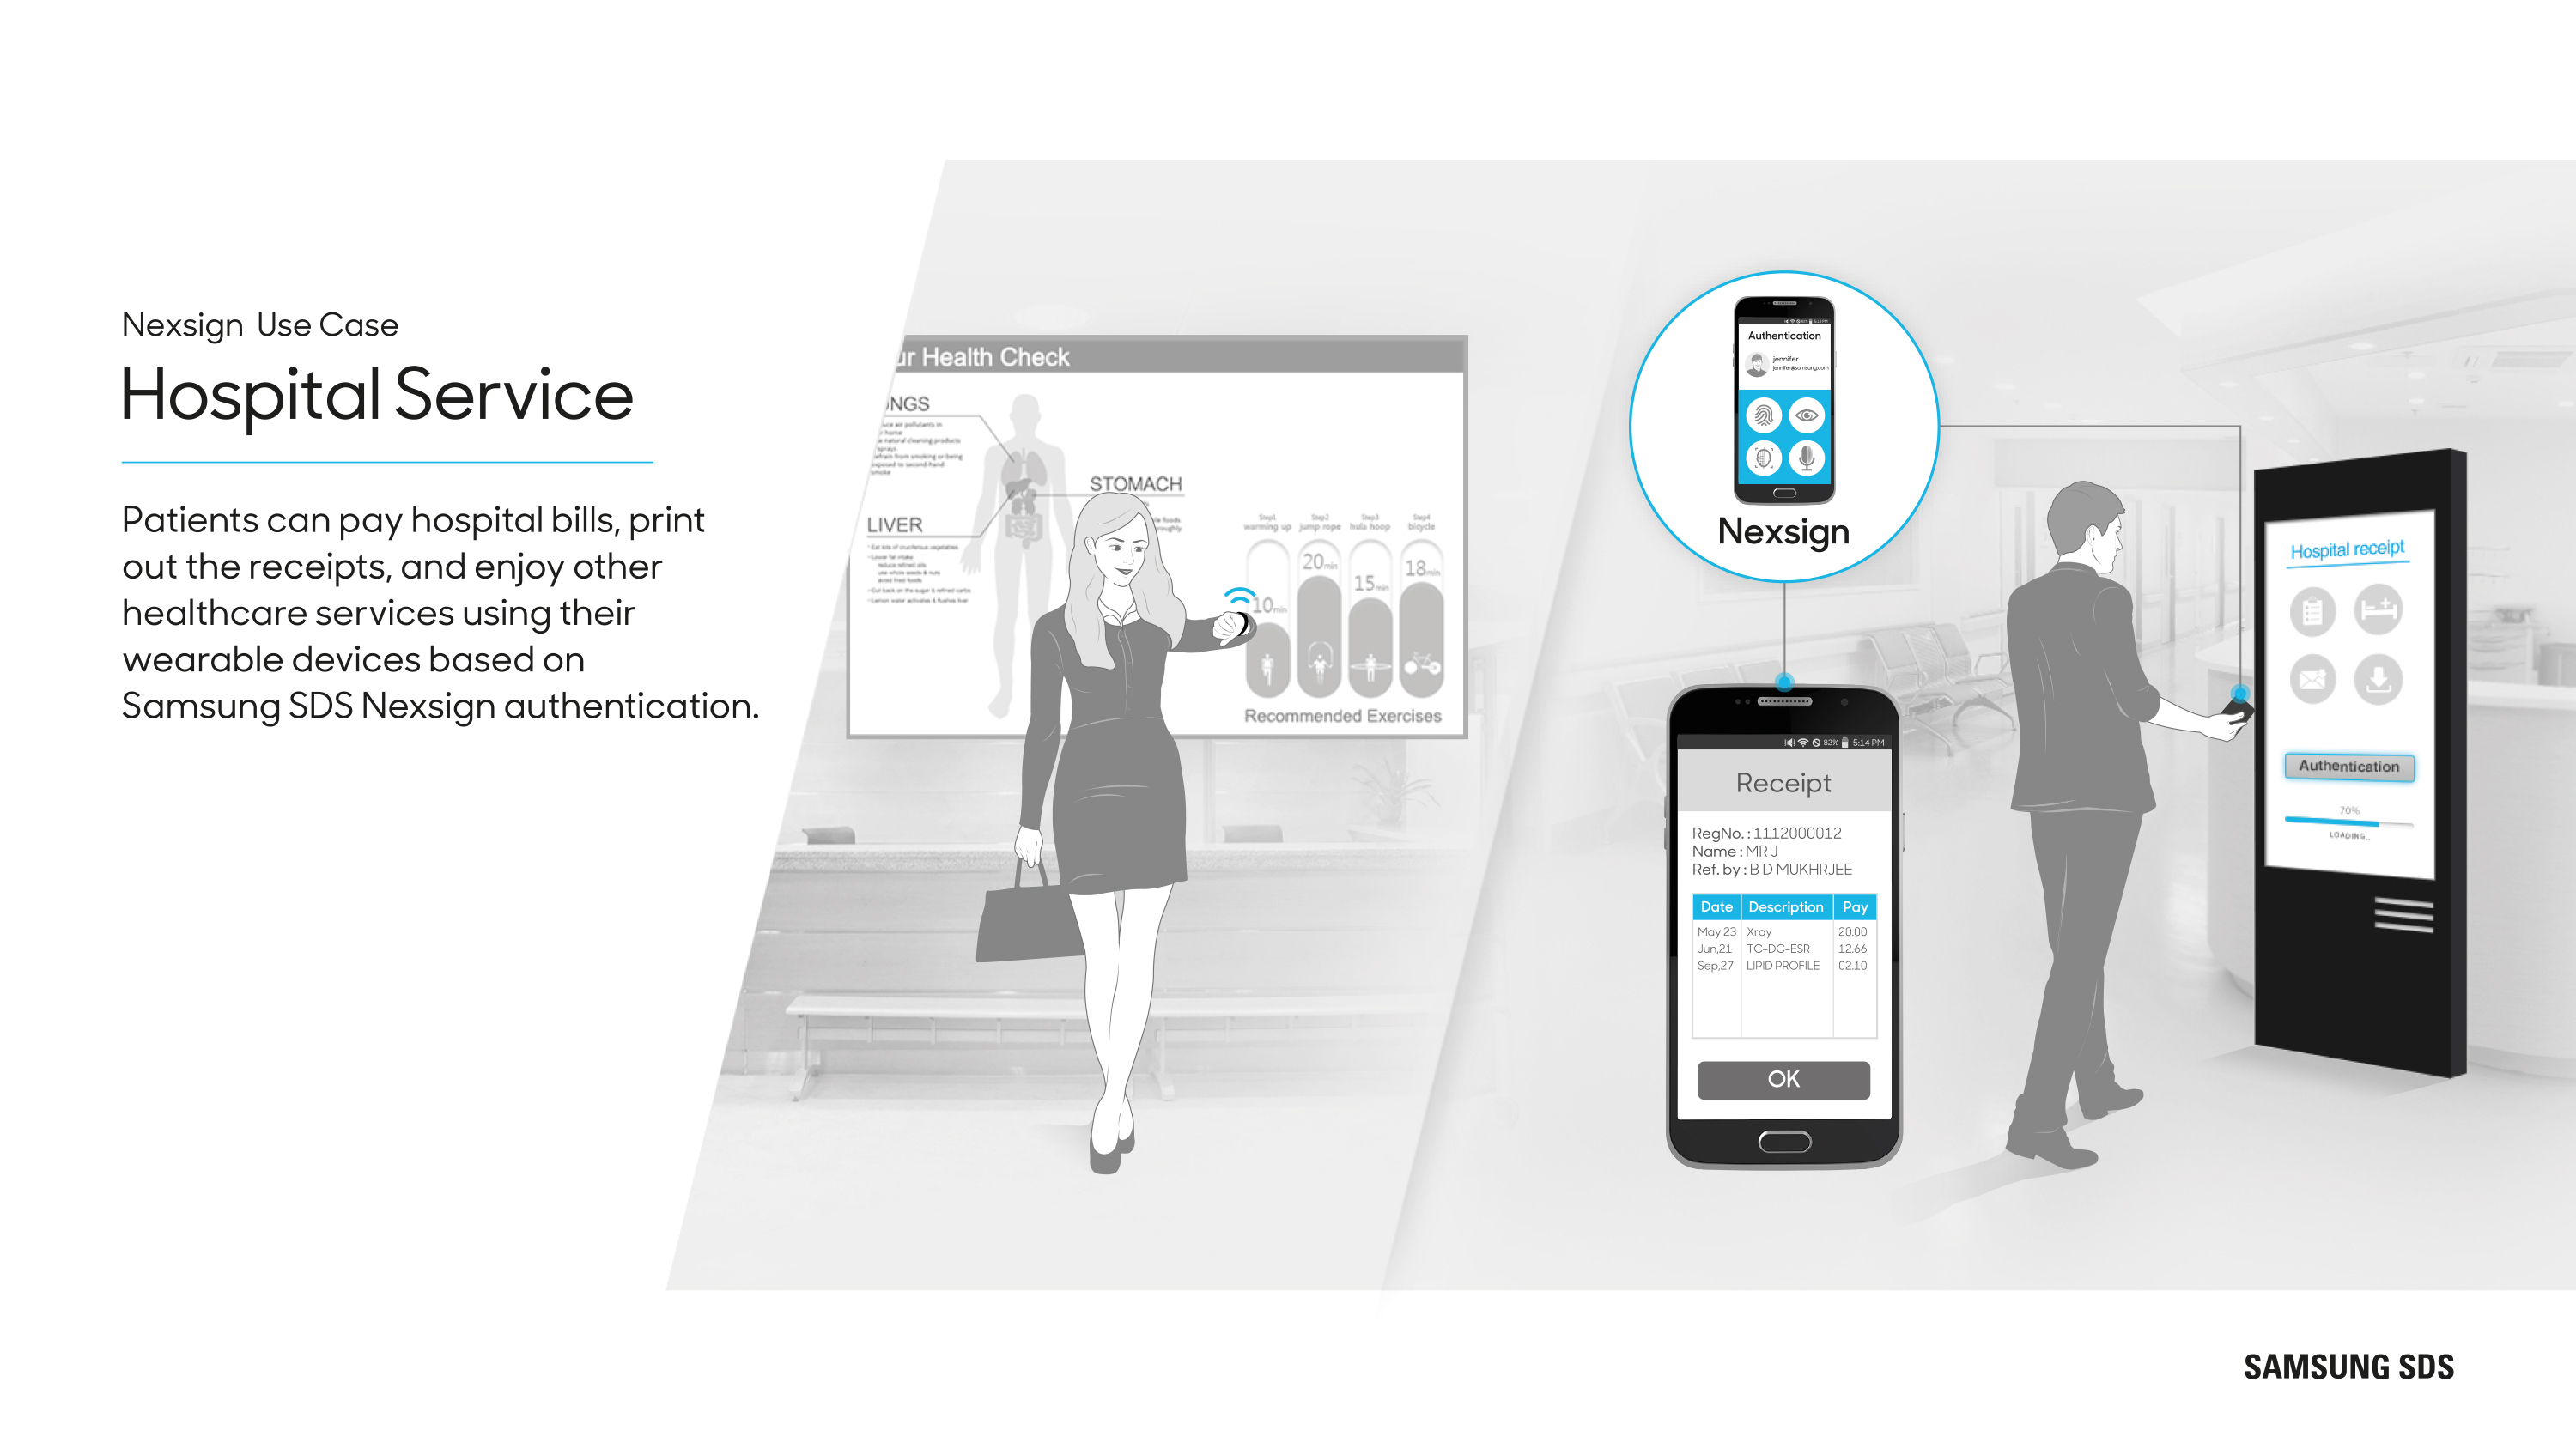 Easier and faster healthcare payments